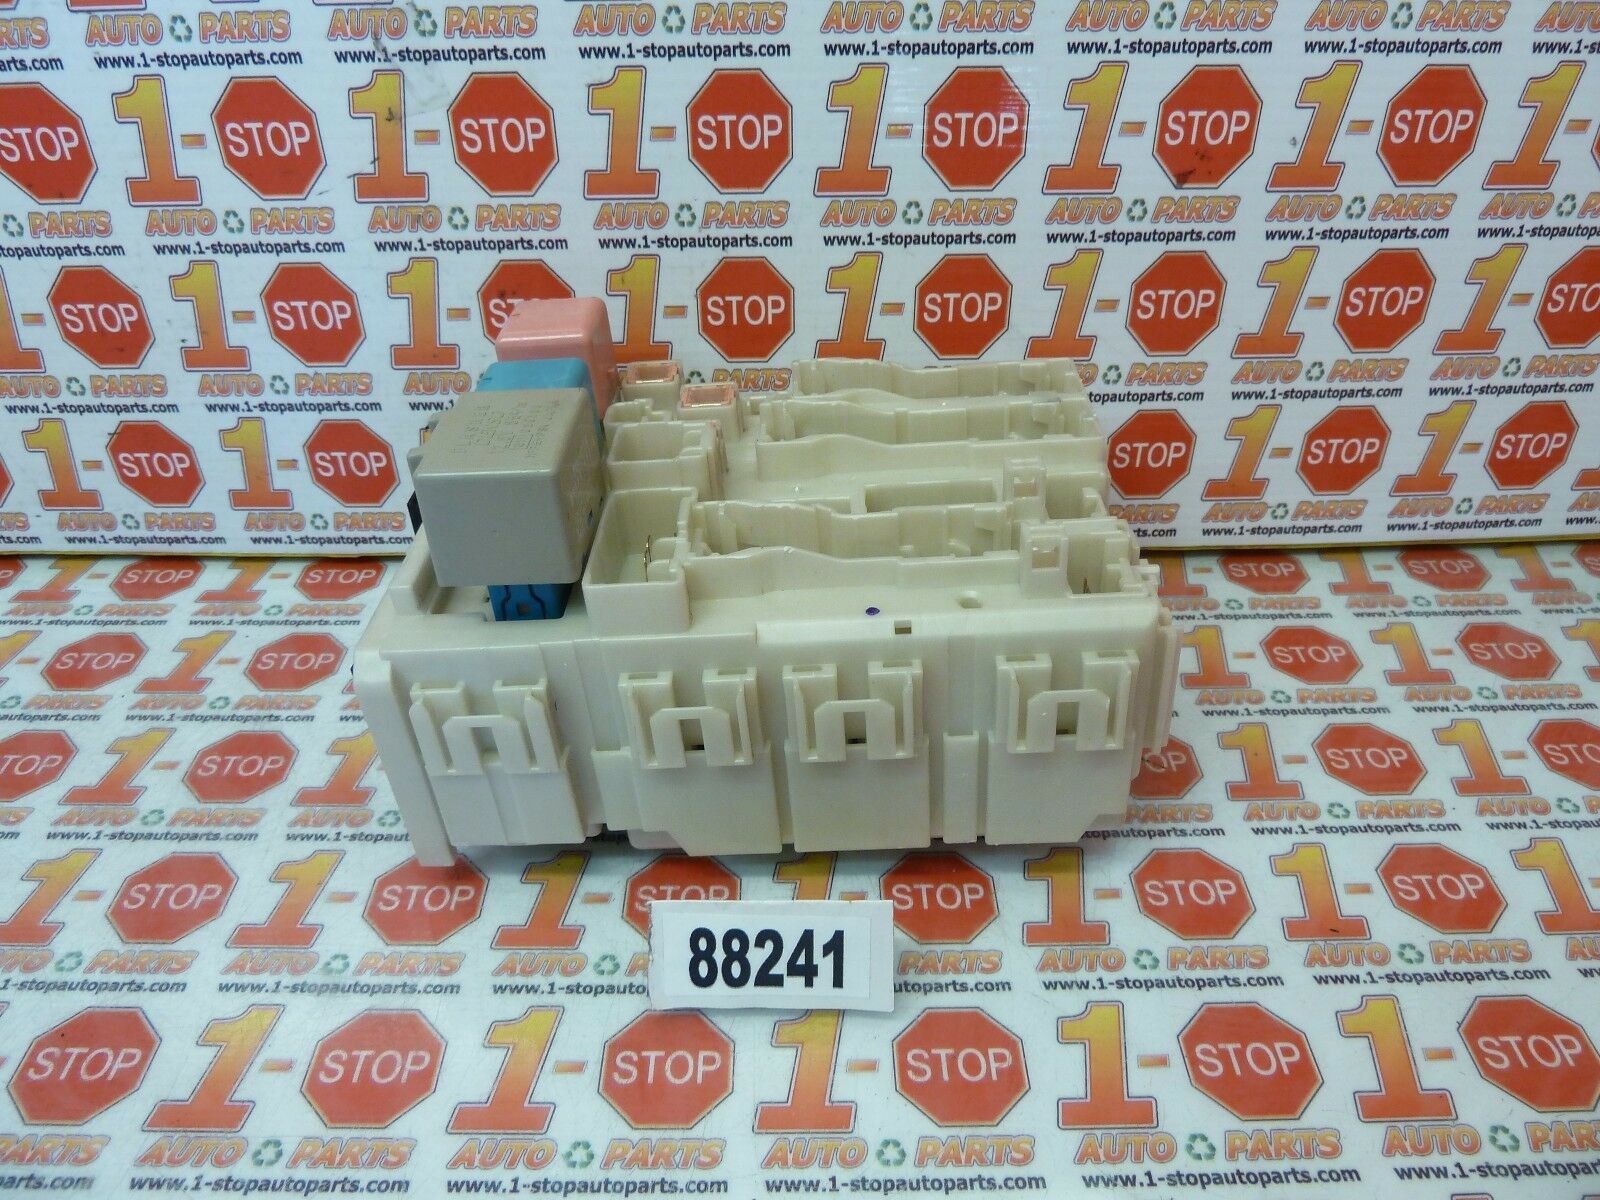 Used Scion Computers Chips Cruise Control And Related Parts For 2013 Frs Fuse Box 2008 Xb 82730 12410 Oem